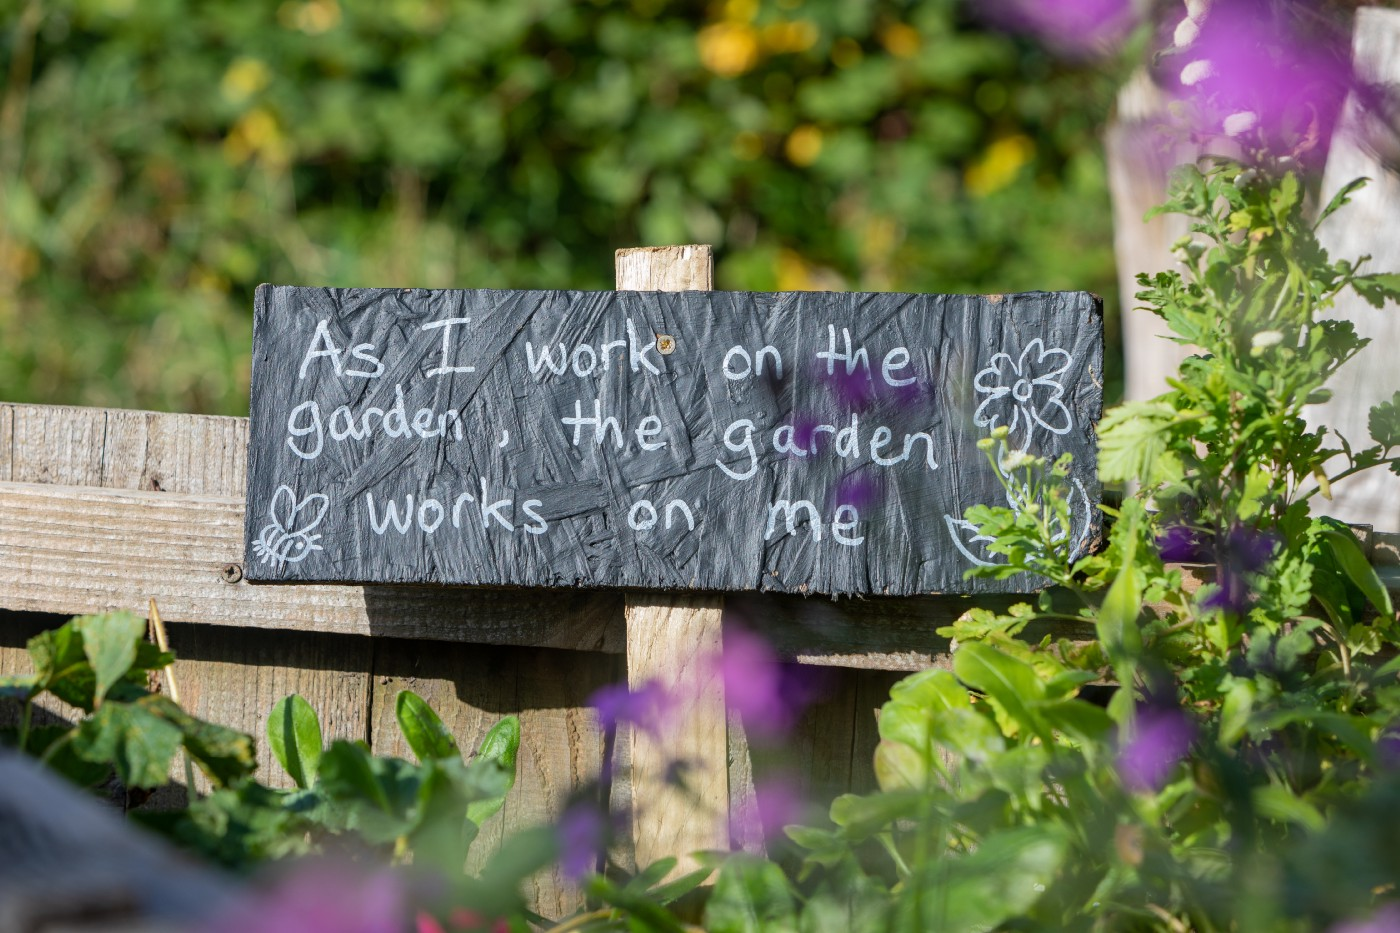 I Wasn't Expecting My Allotment To Be Good For My Mental Health—The positive power of nature and the environment